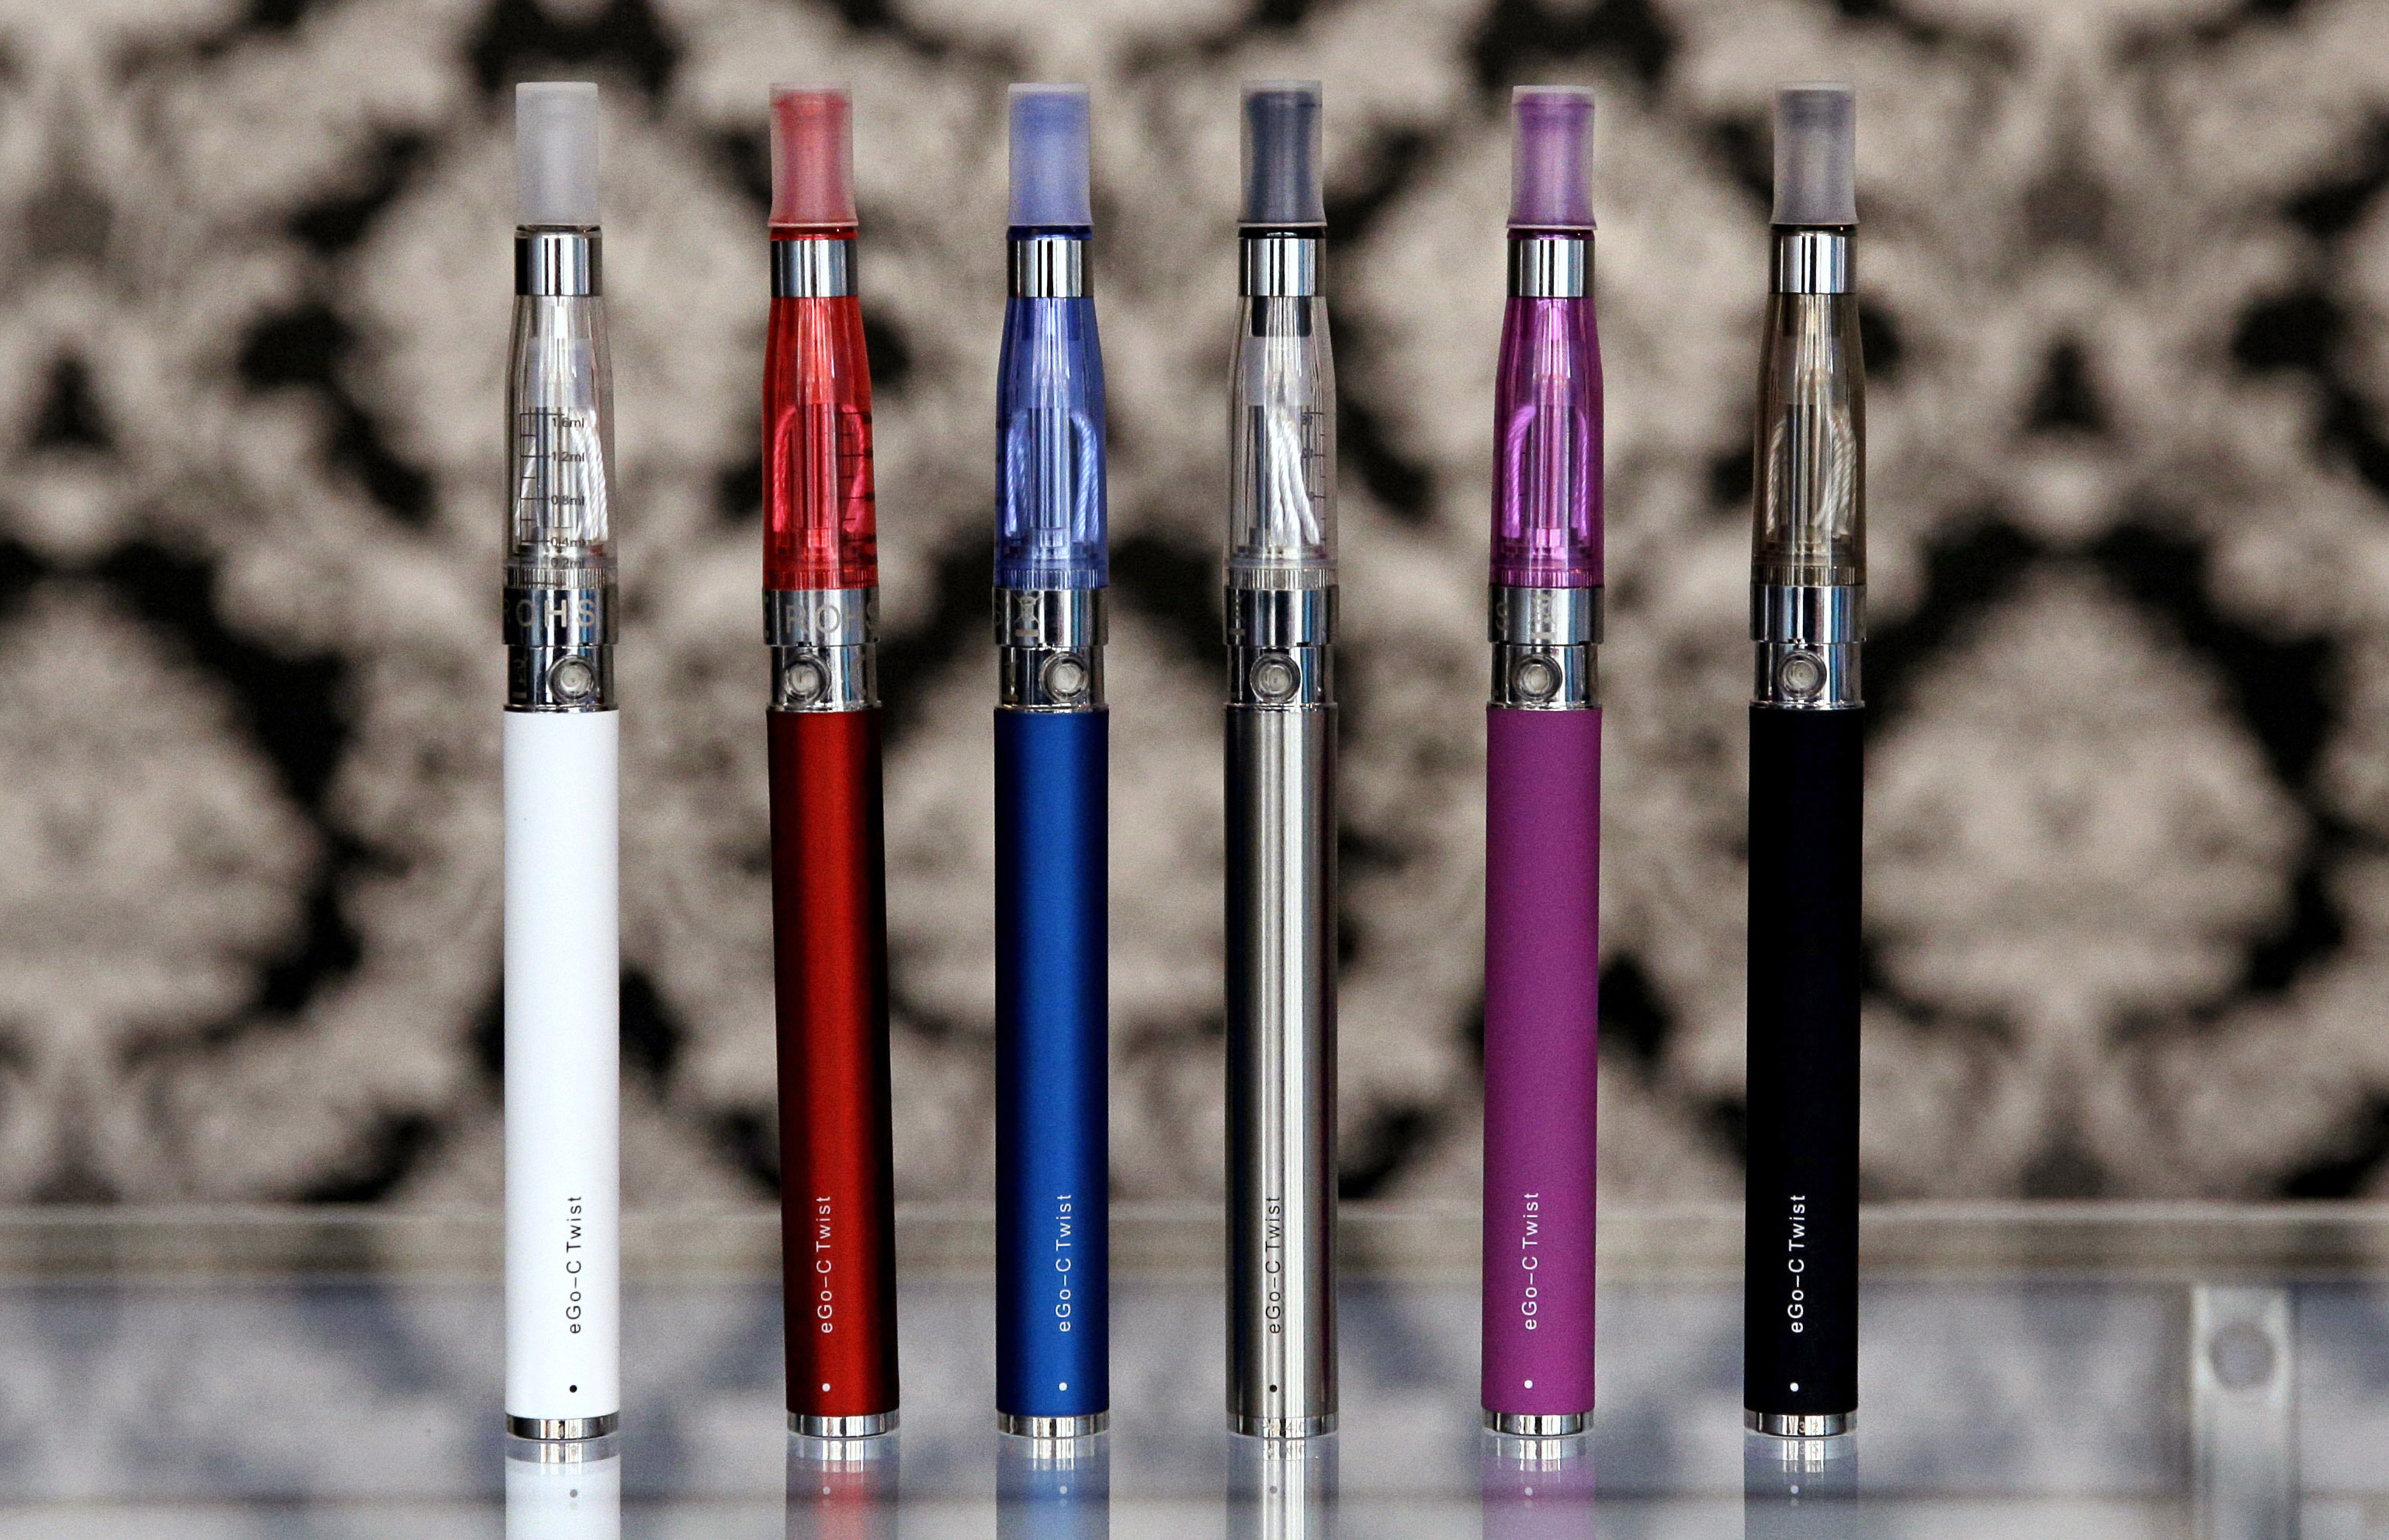 Advocates want ban on flavored tobacco and vaping products